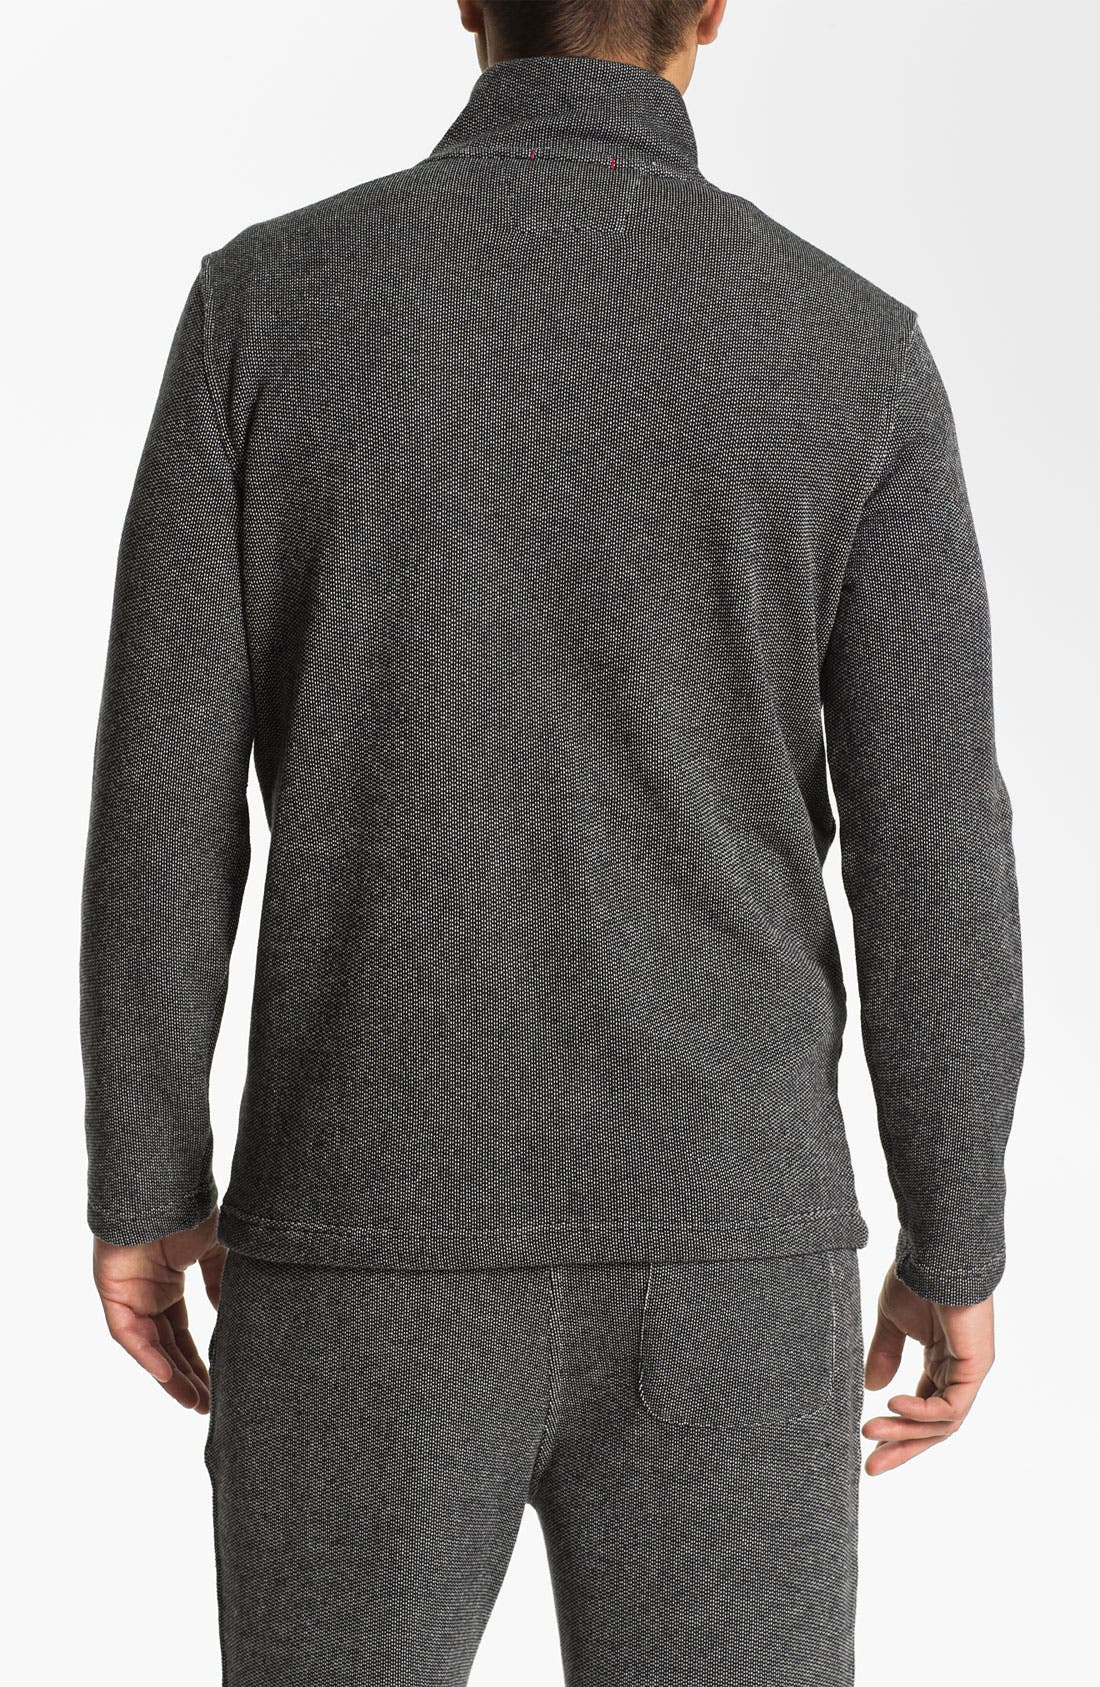 Alternate Image 2  - Daniel Buchler Quarter Zip Textured Cotton Blend Sweatshirt